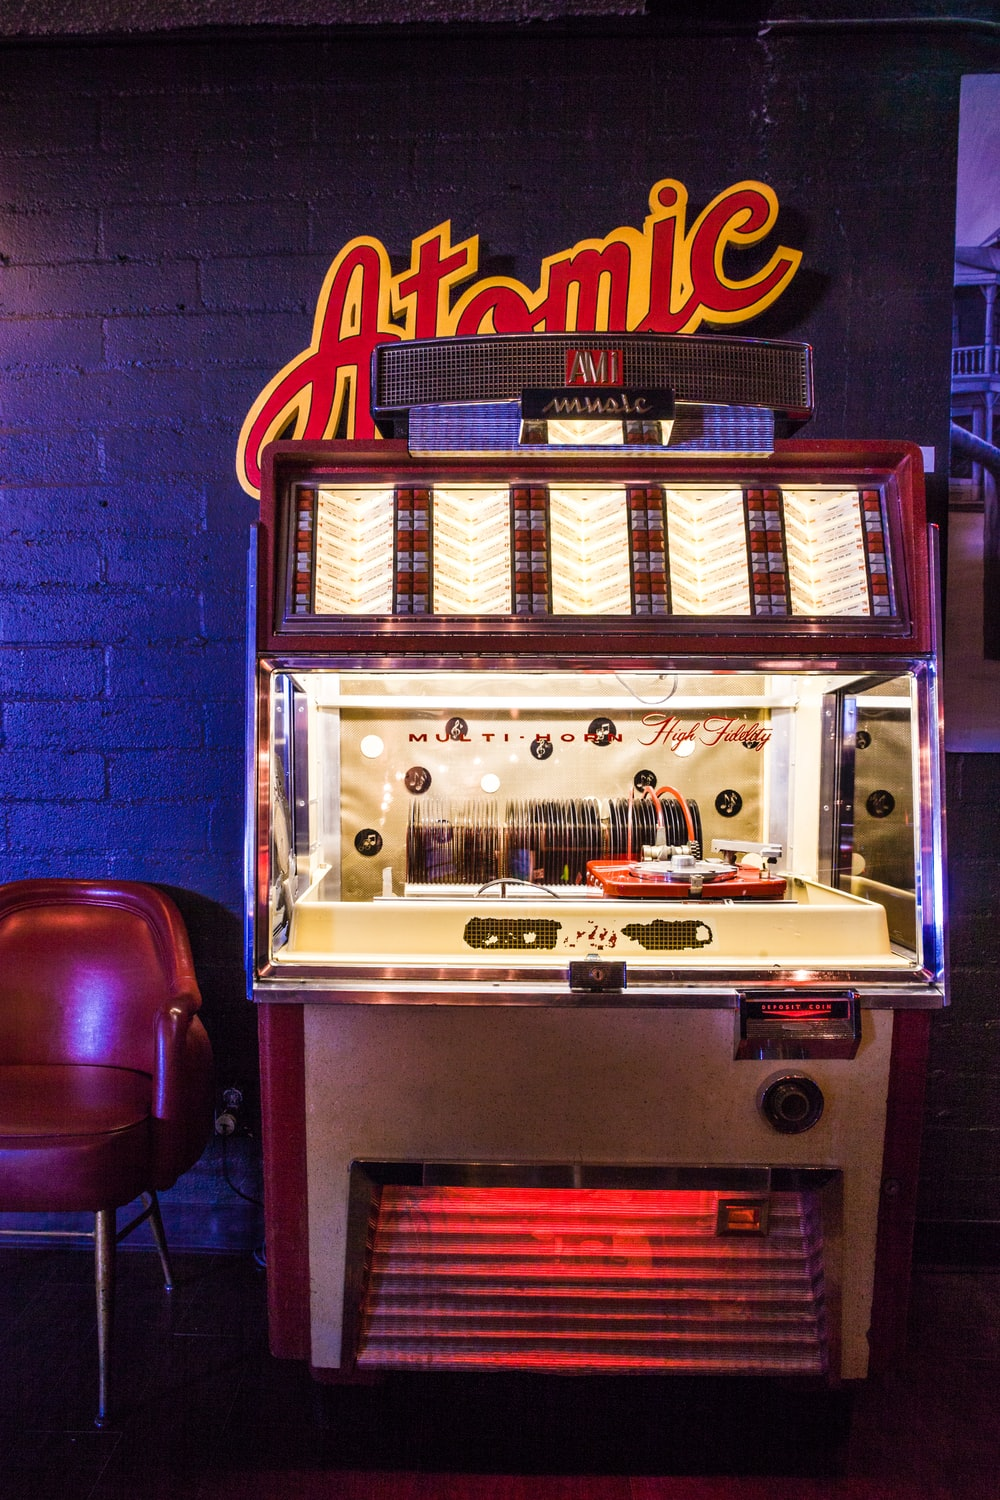 lighted brown and white arcade game console near wall